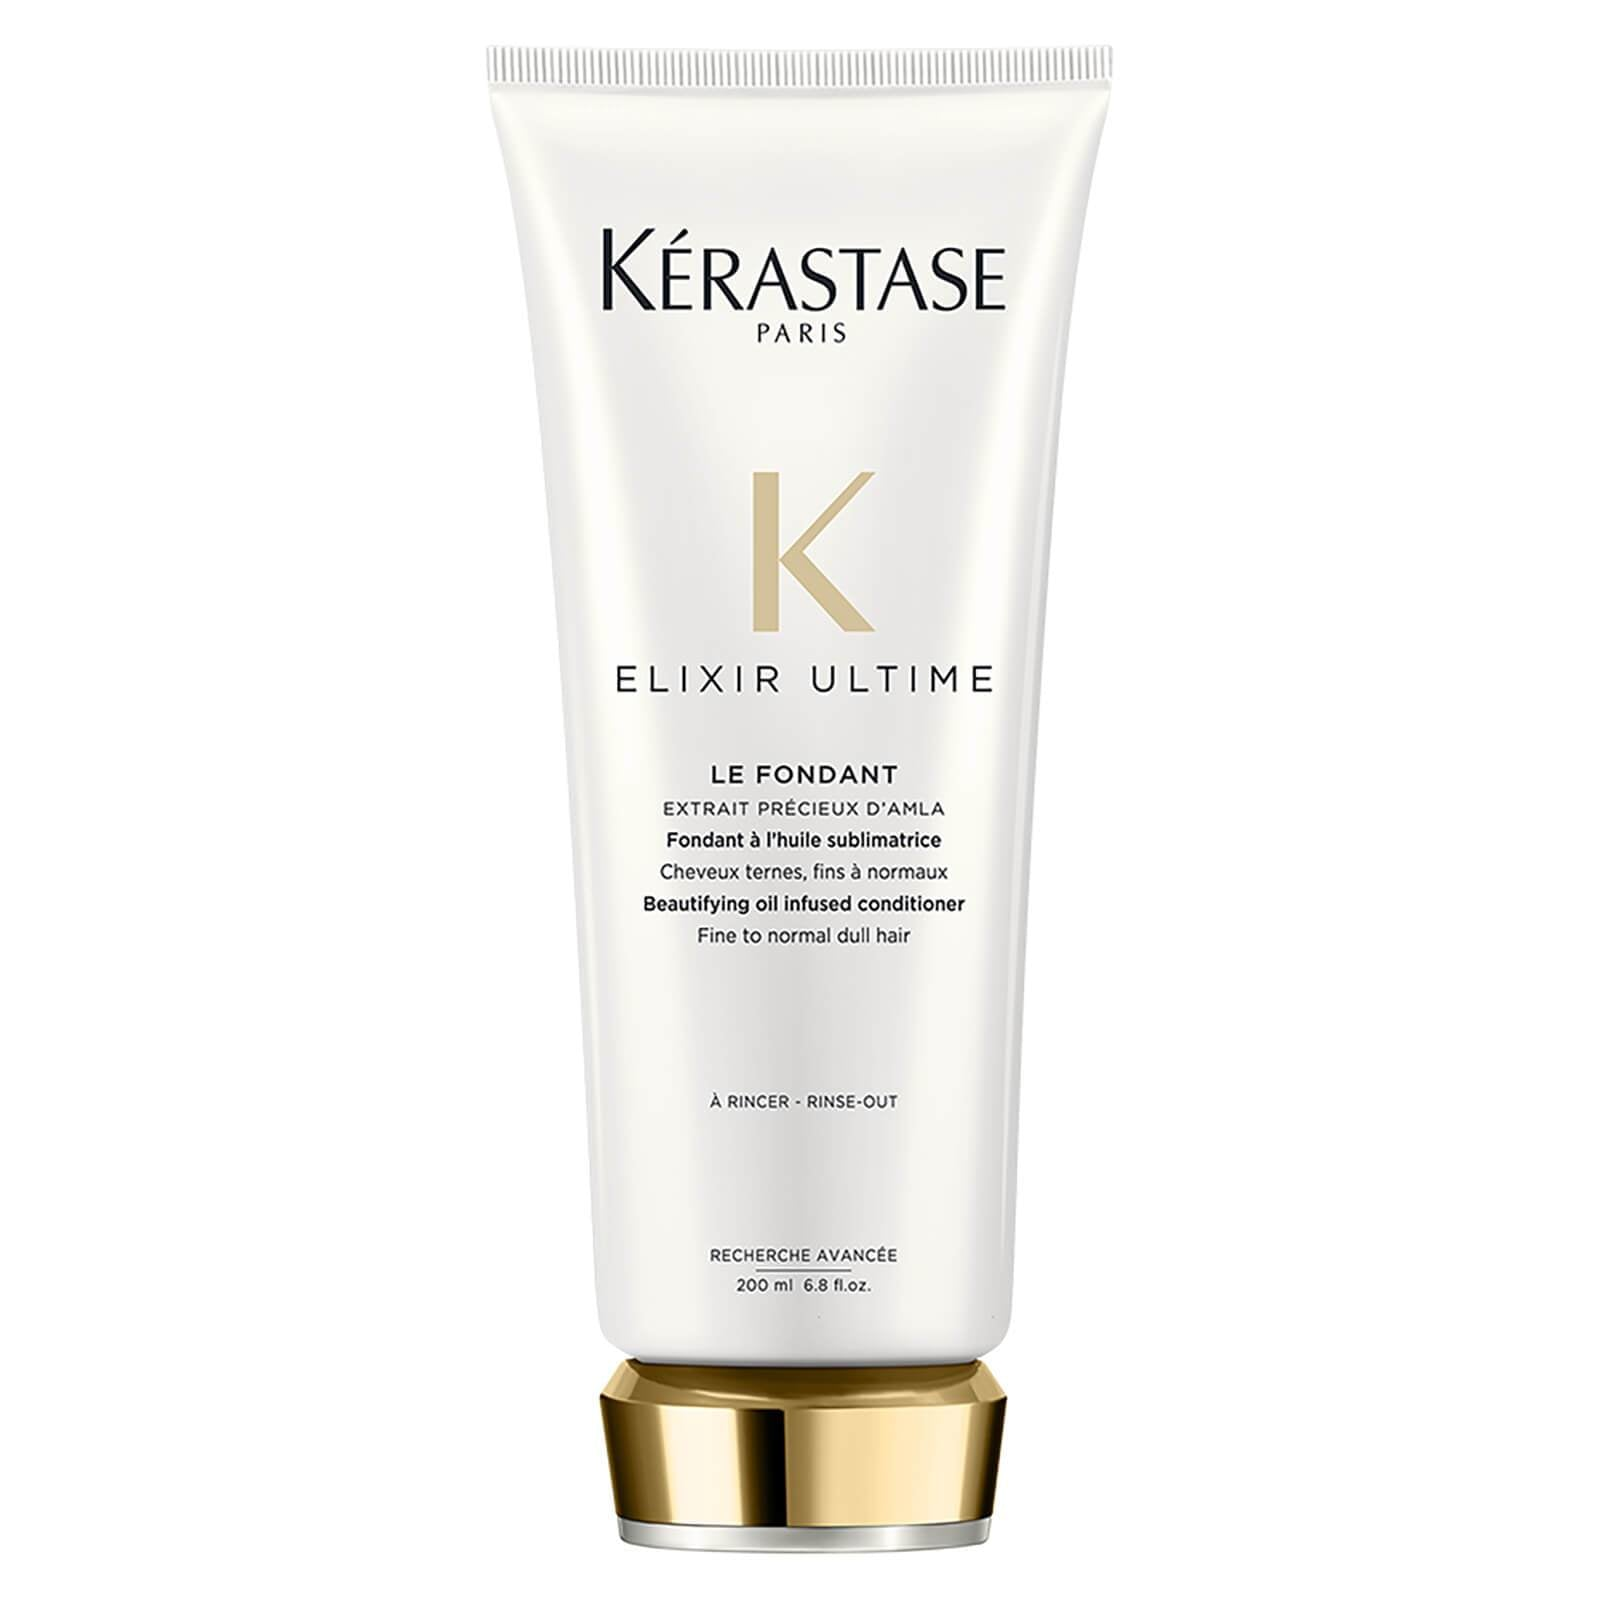 Kerastase Elixir Ultime Soin Conditioner 200ml